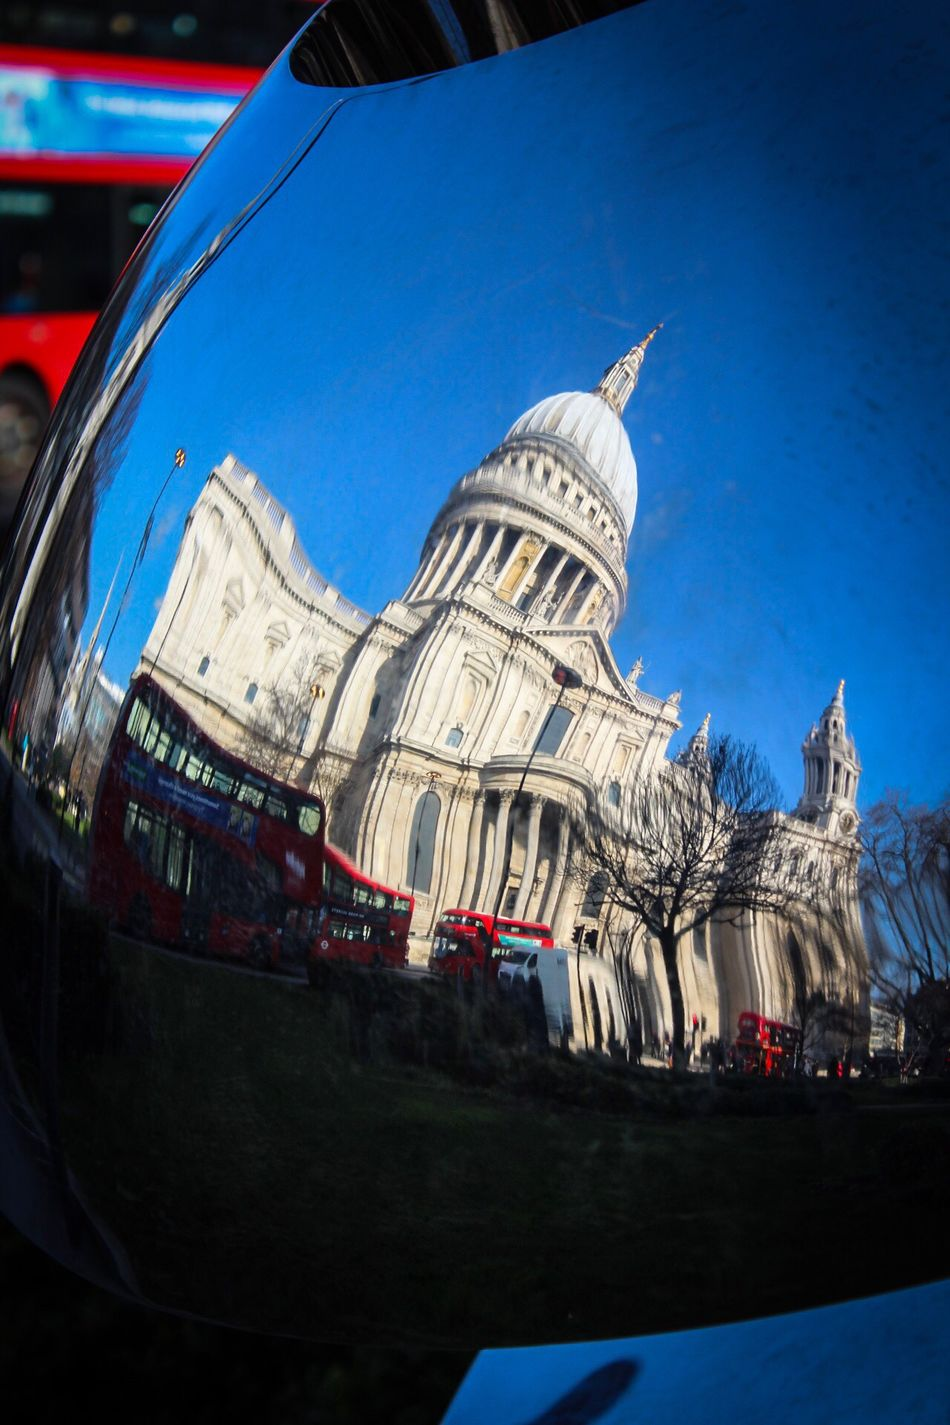 Architecture Built Structure Blue Building Exterior Transportation City Dome Low Angle View Outdoors Day No People Sky Place Of Worship Cathedral Tourist Attraction  City Convex Mirror Distortion Reflection London St Paul's Cathedral Everyday Travel Destinations Londonbus